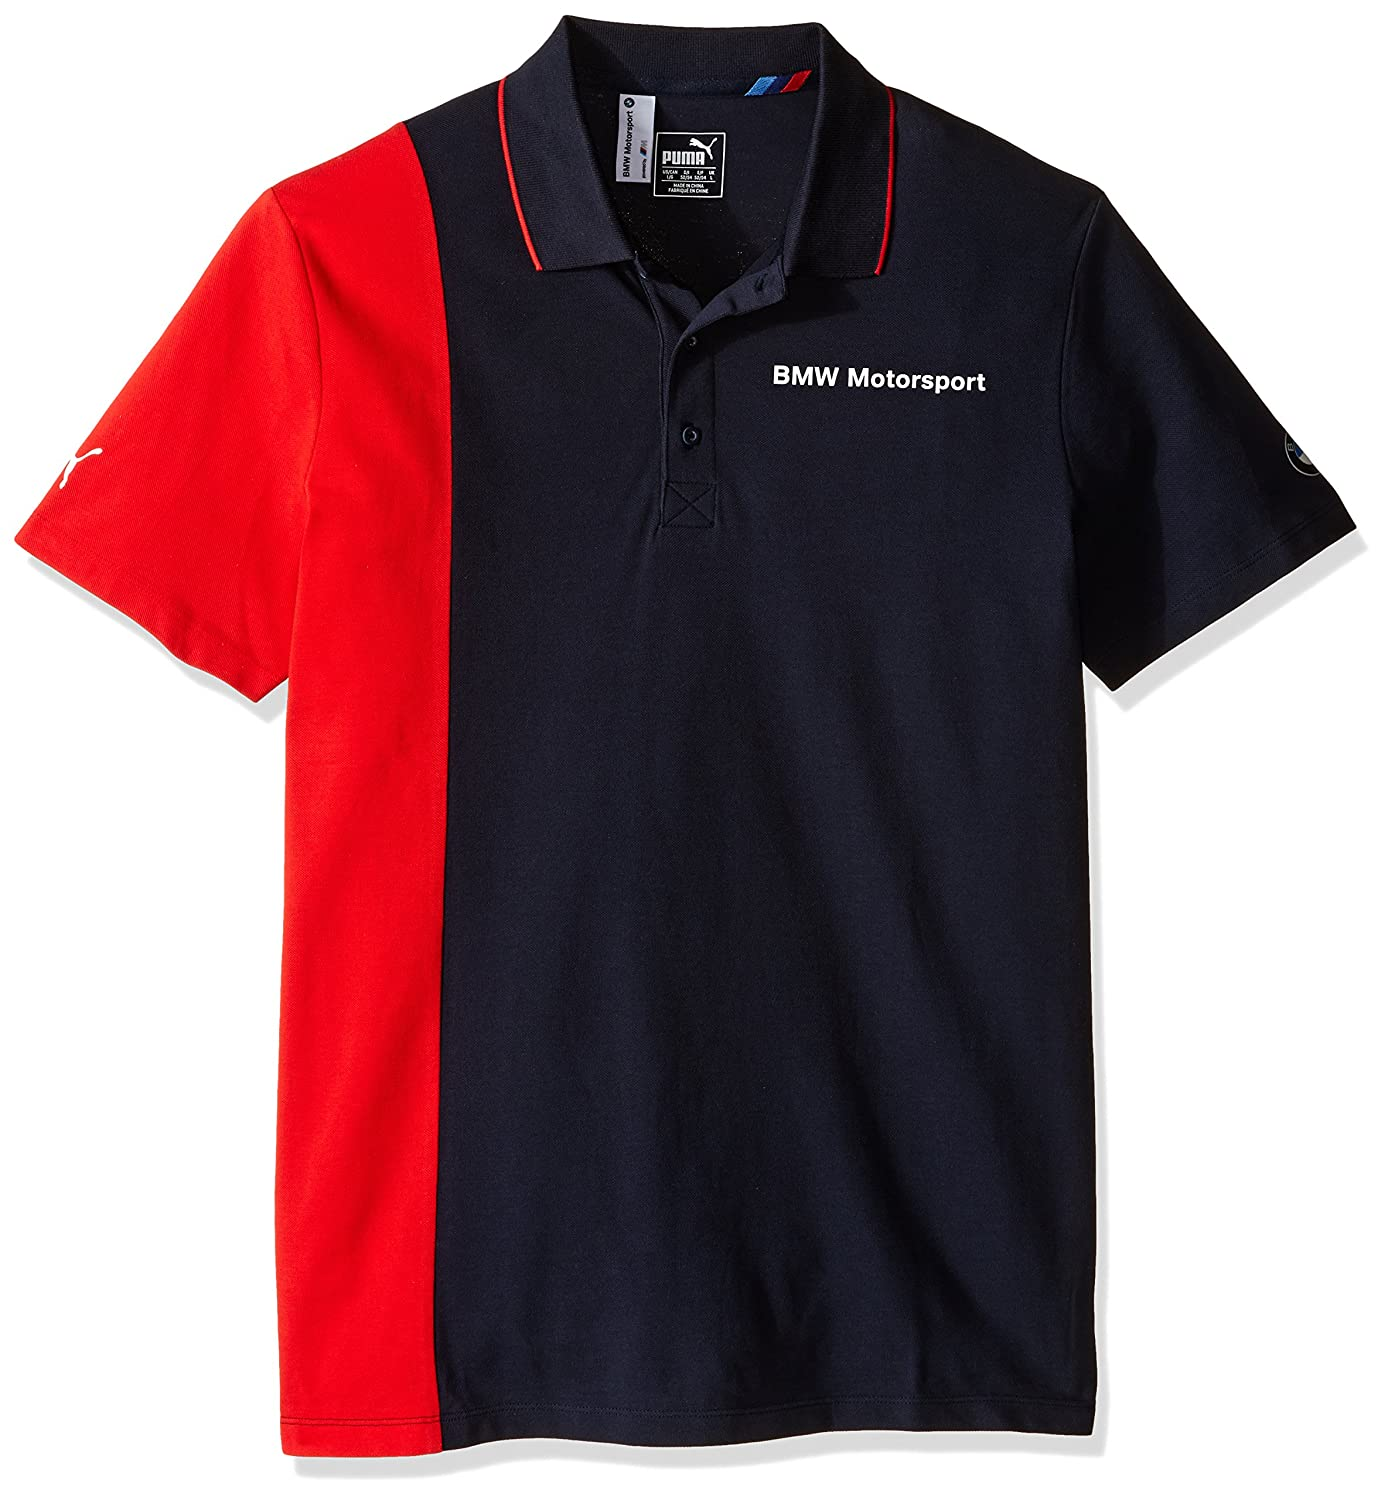 Puma Bmw Motorsport Shirt eL39bm